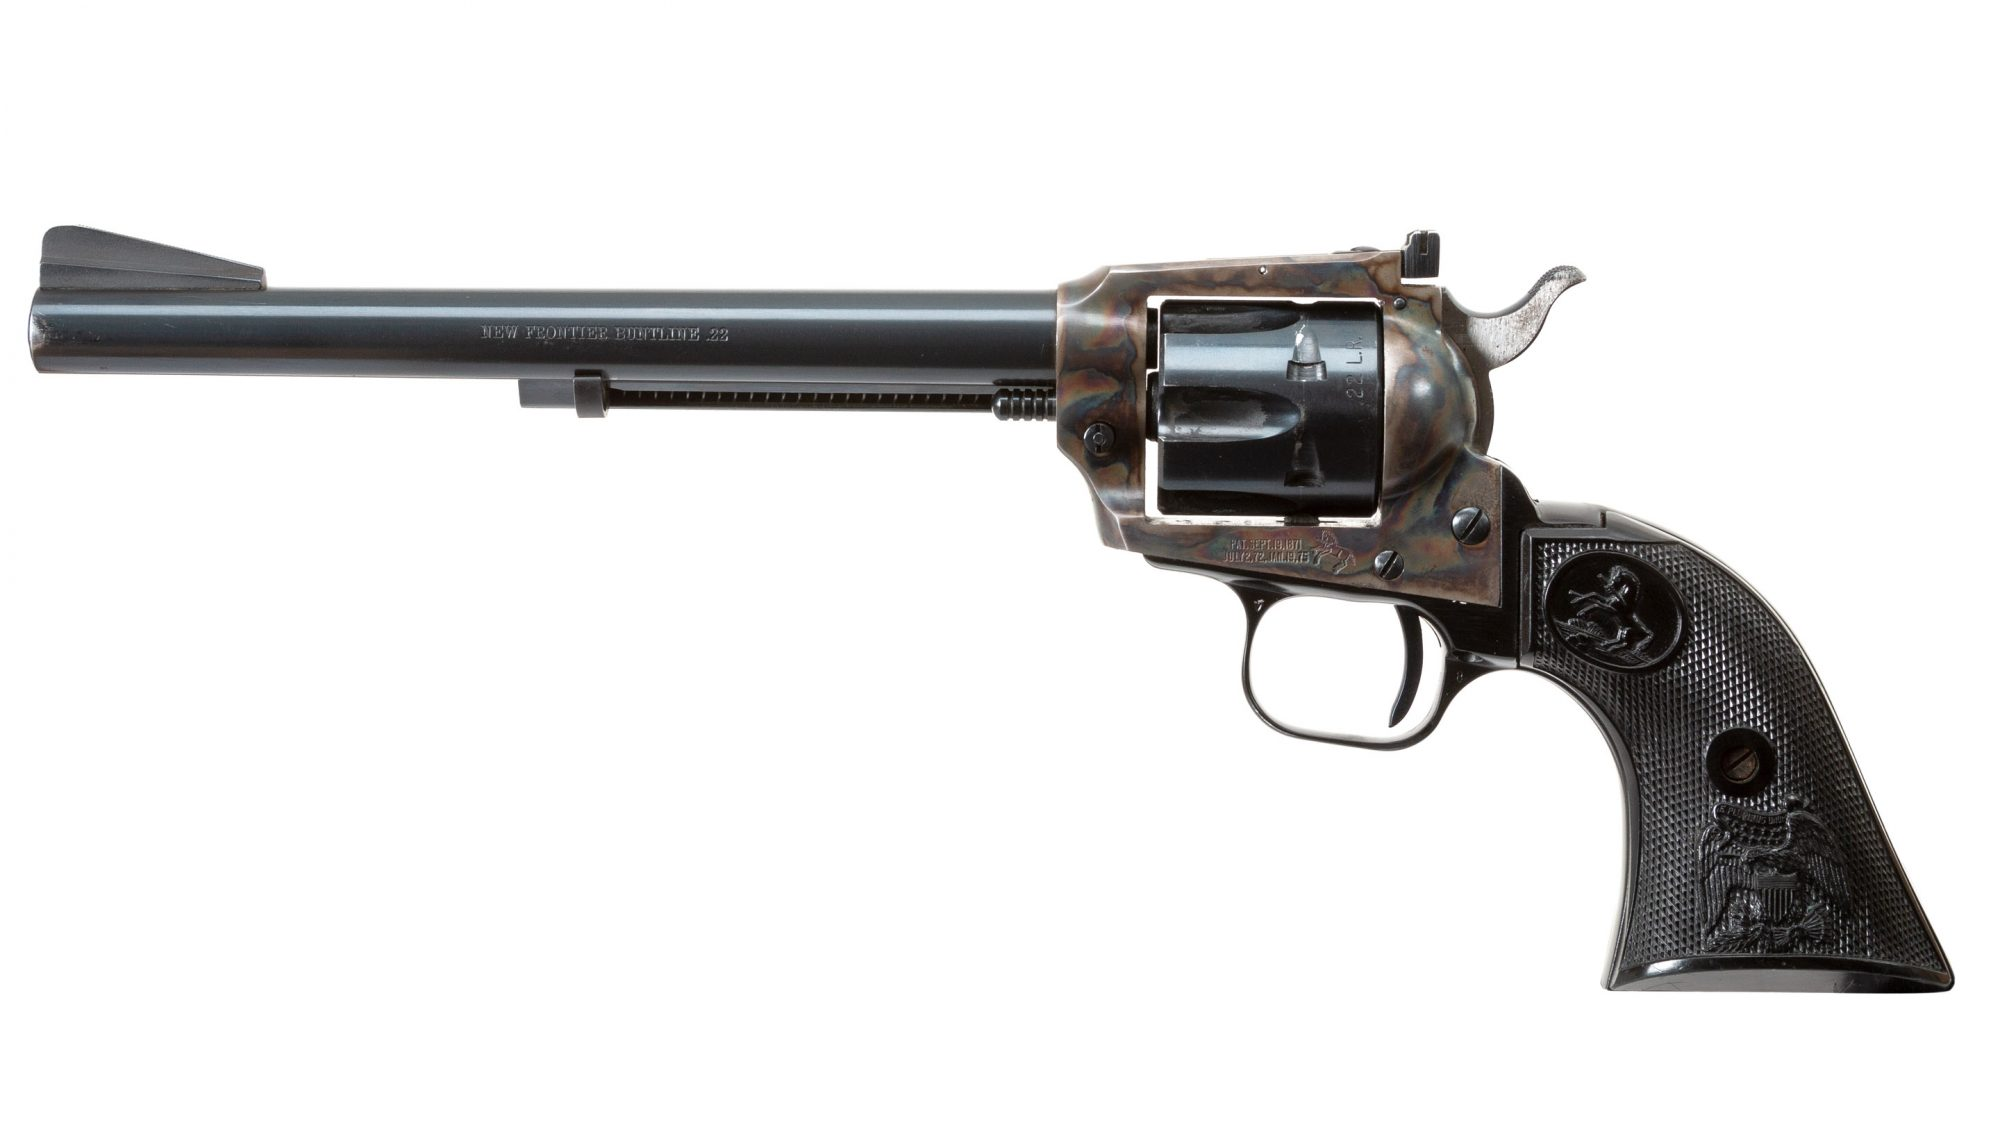 Photo of a pre-owned Colt New Frontier revolver, for sale by Turnbull Restoration of Bloomfield, NY